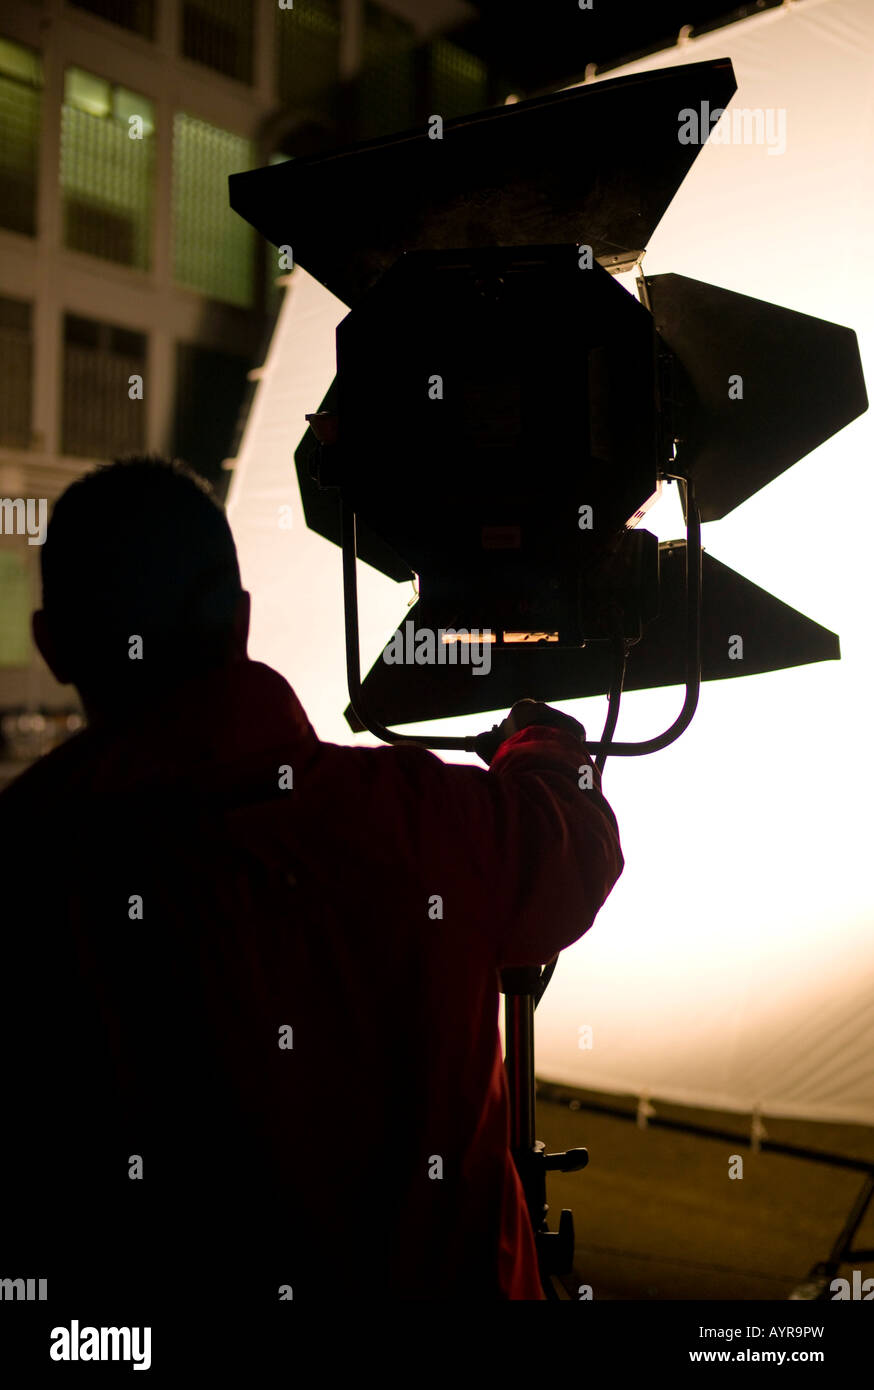 Lighting technician setting up a floodlight on a film set in Germany, Europe - Stock Image